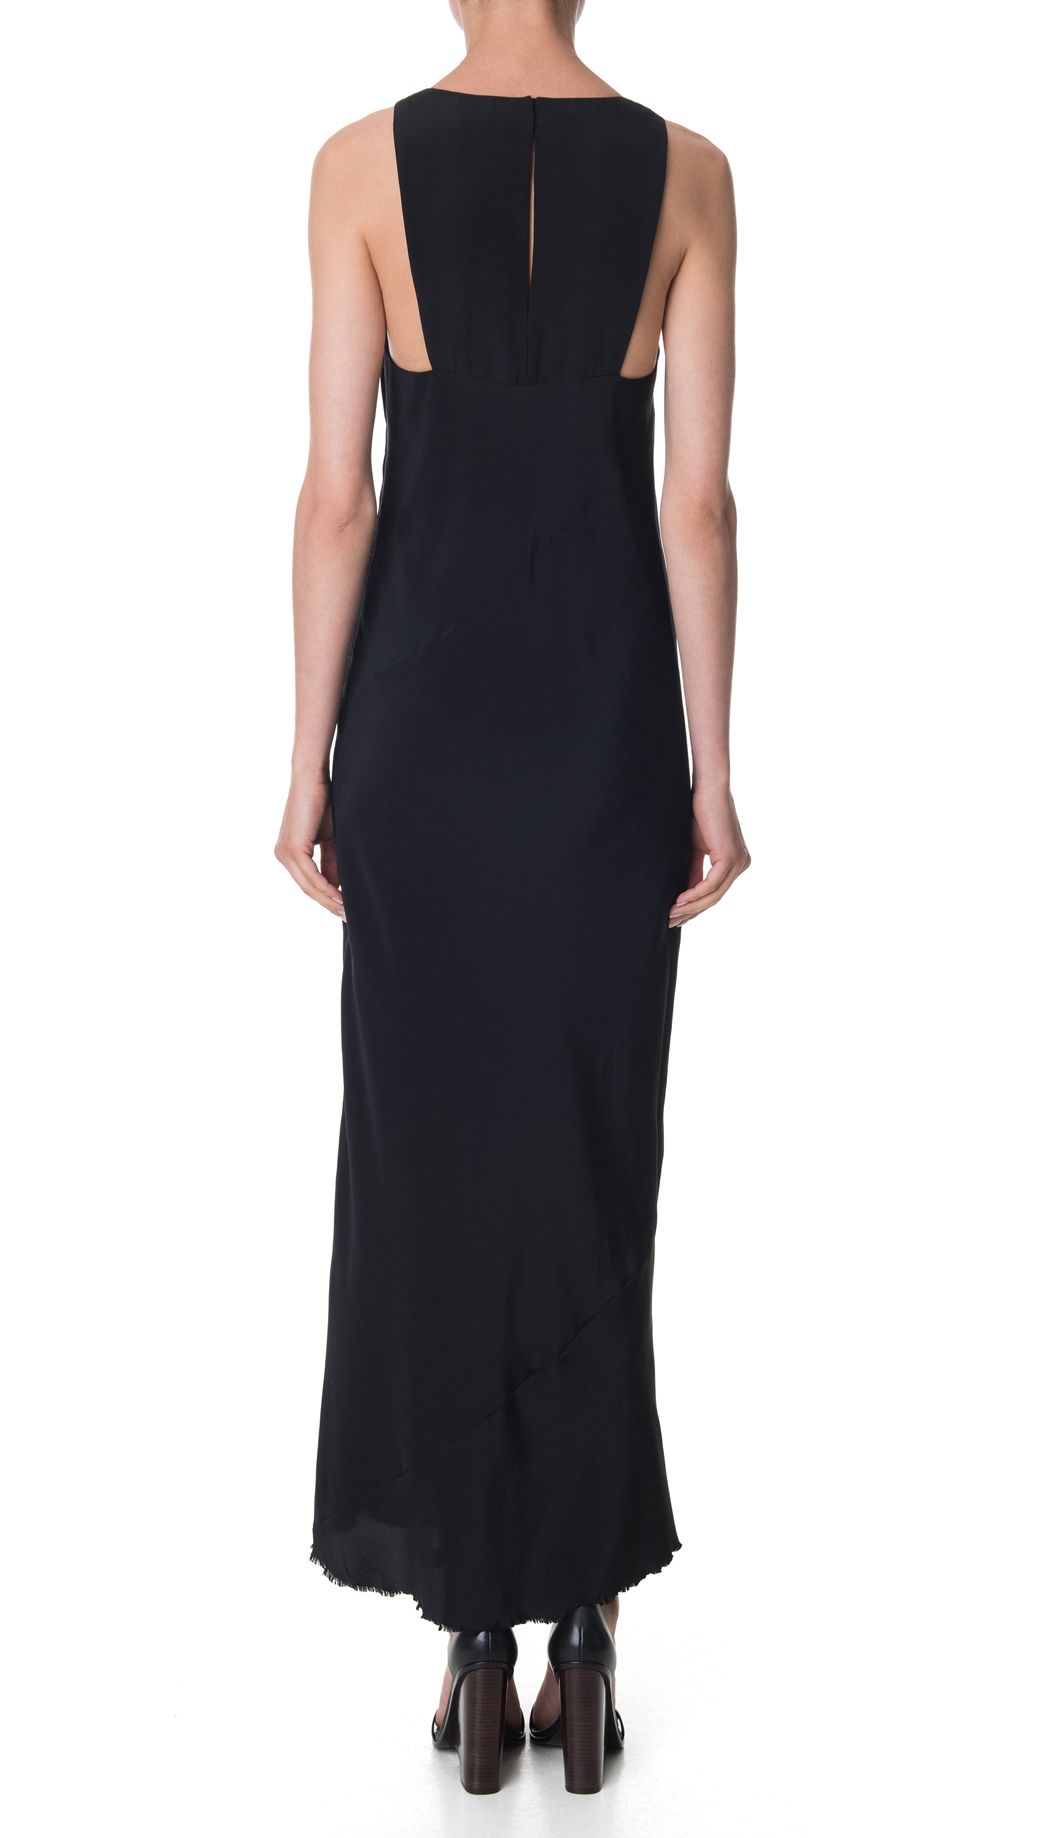 A wide selection of Women Clothing from the best brands on YOOX. Shop online: delivery in 48 hours and secure payments.